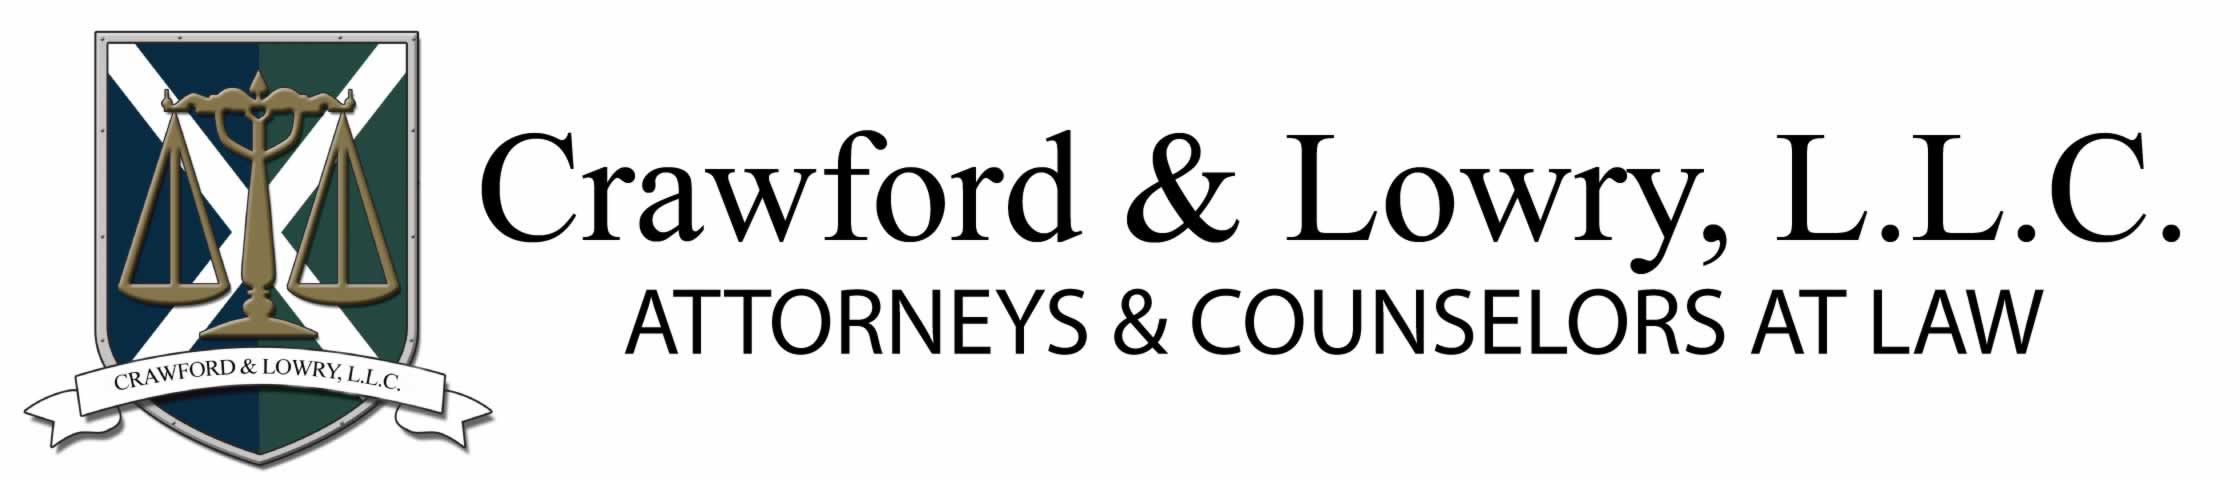 Crawford & Lowry, L.L.C. - Attorneys